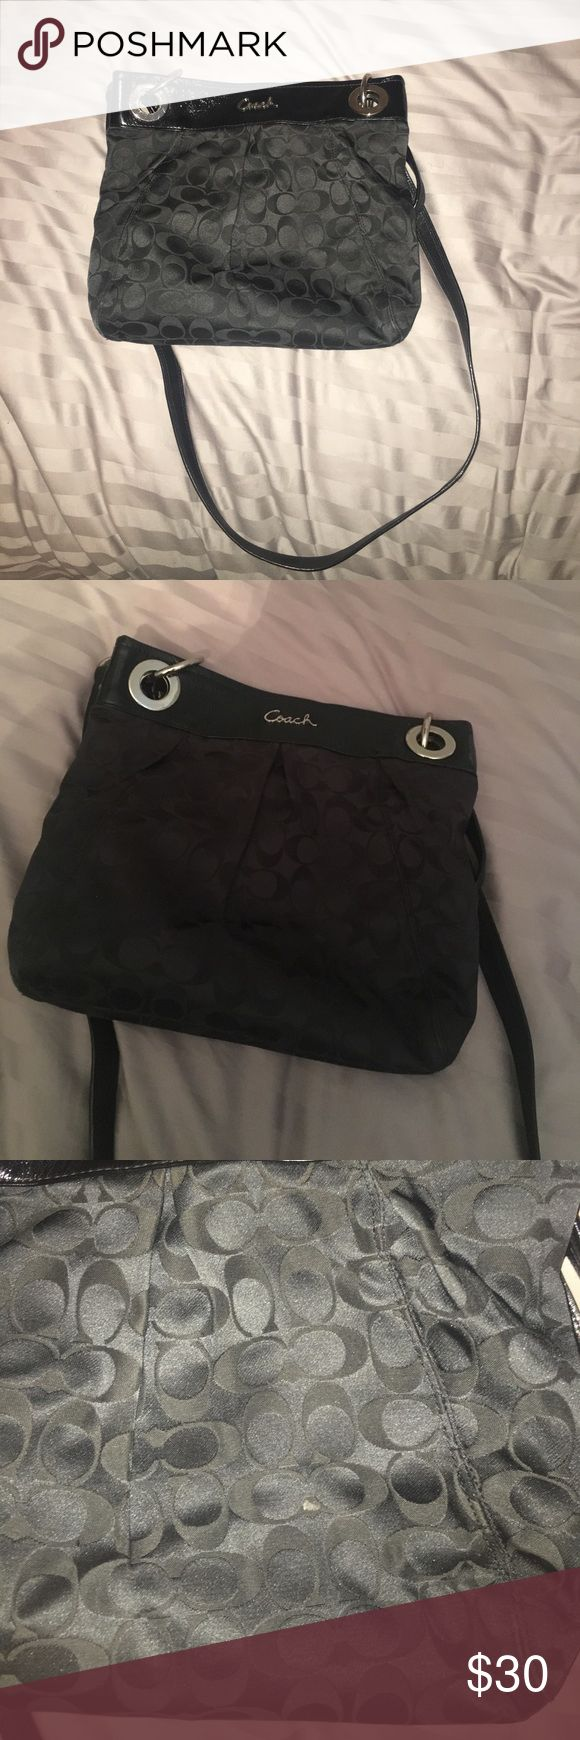 Coach satchel. Used a few times. Decent condition. Coach satchel. Used a few times. Decent condition. Great for the summer and really roomy!  Will email additional pictures if interested Coach Bags Crossbody Bags